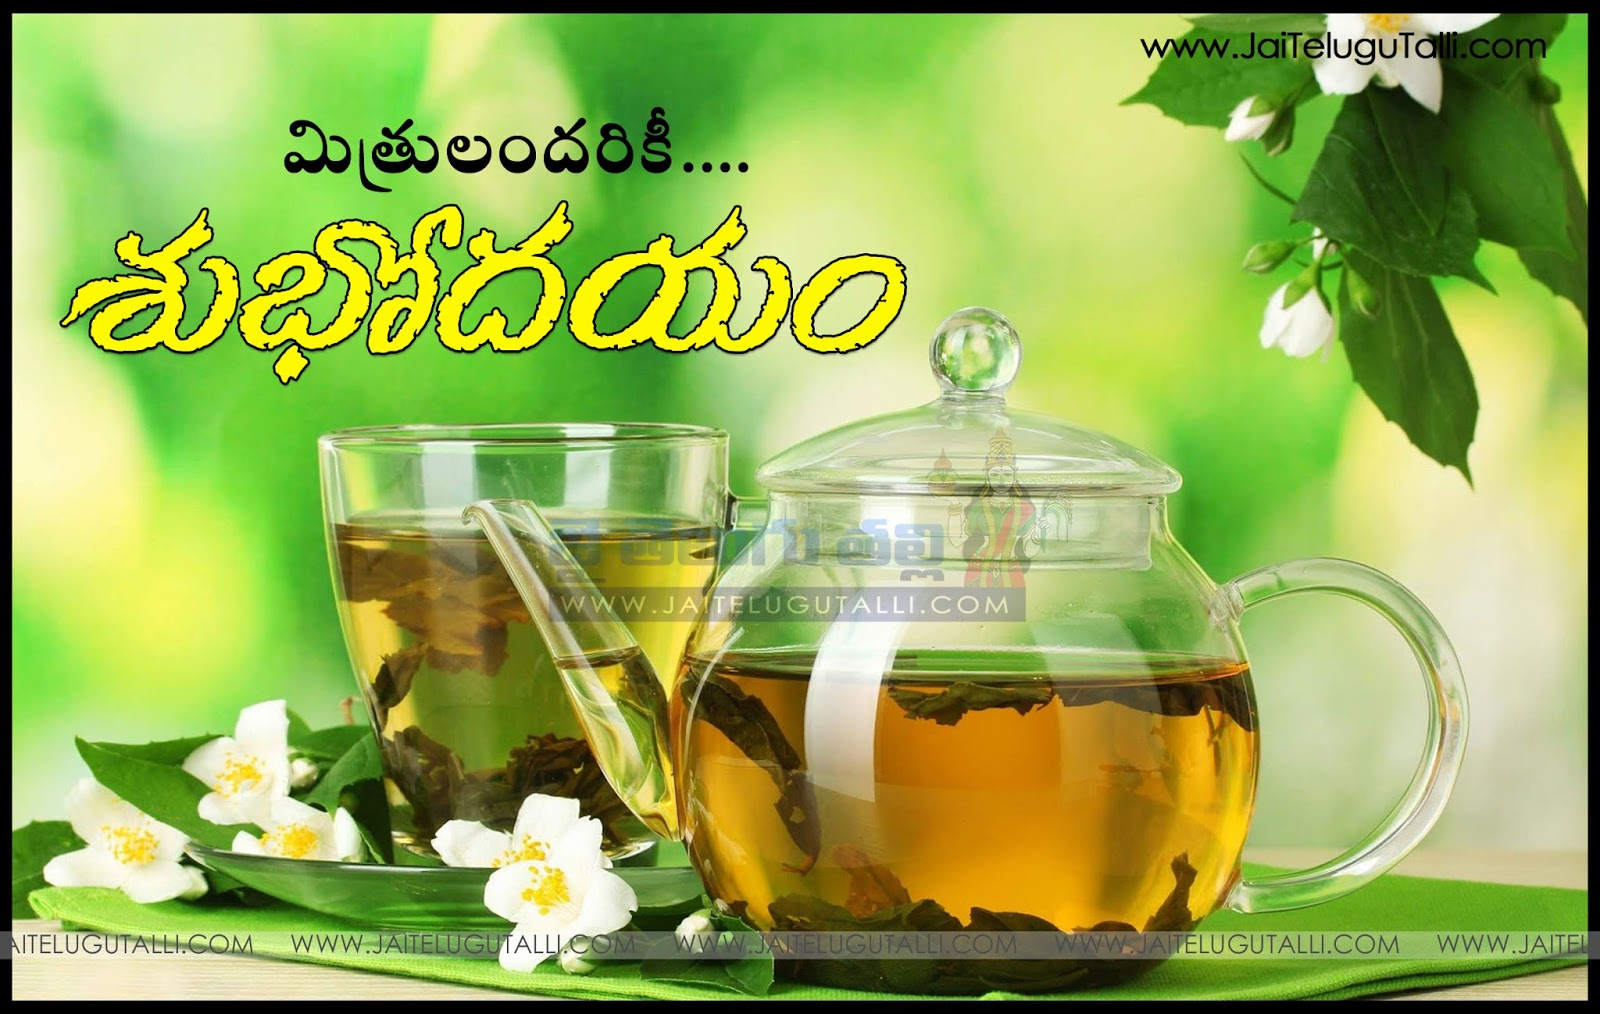 Good morning wishes in telugu hd wallpapers happy morning telugu good morning quotes wshes life inspirational thoughts kristyandbryce Gallery